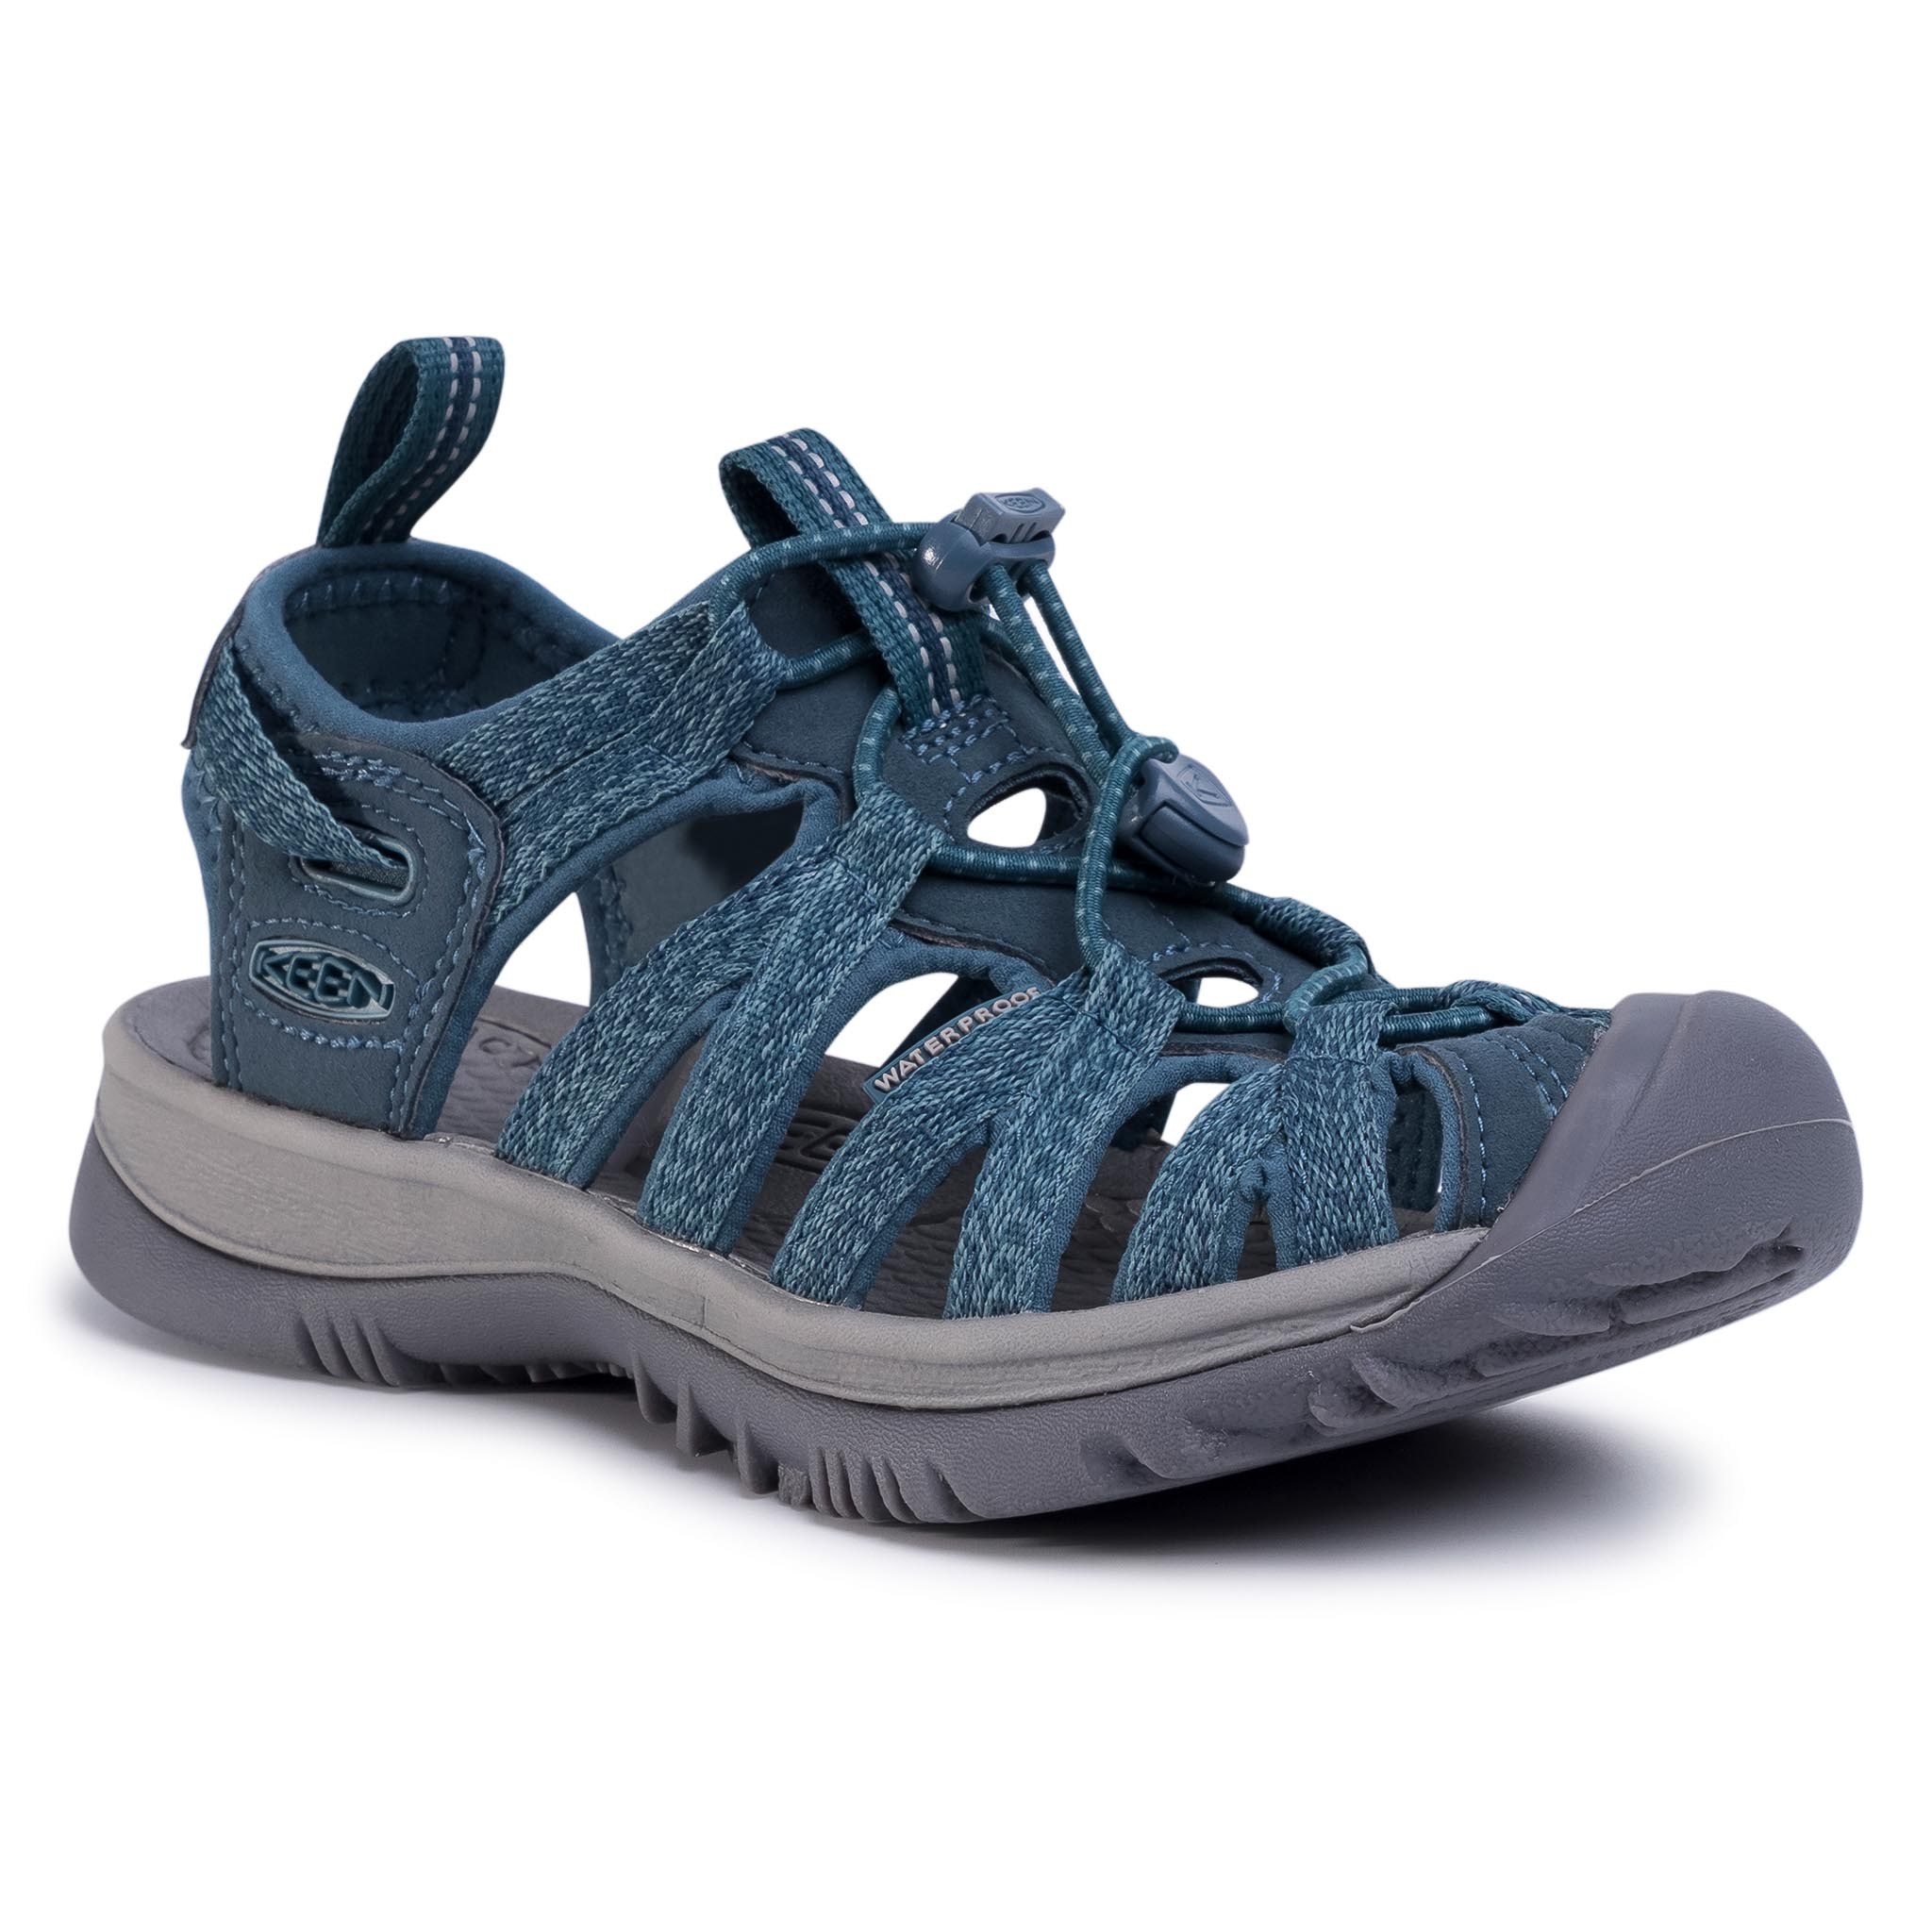 Sandale KEEN - Whisper 1022809 Smoke Blue